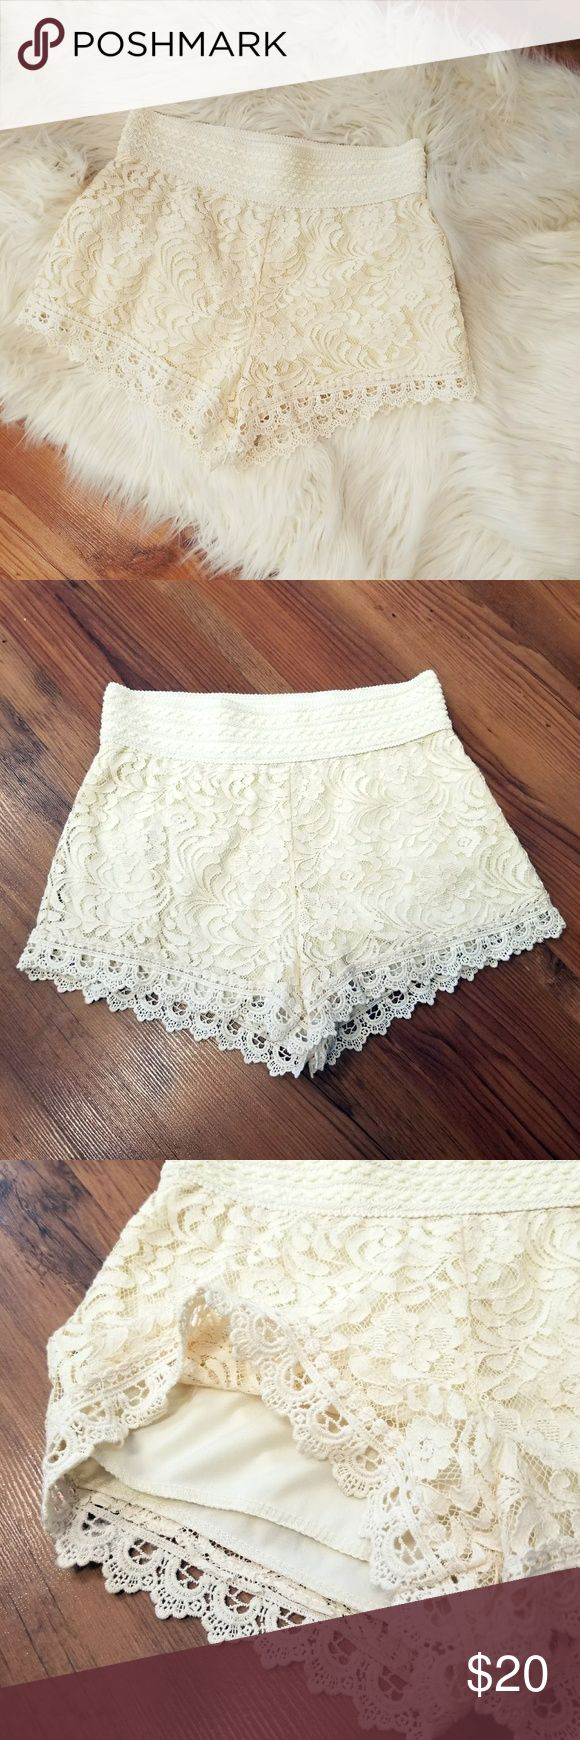 """A APPAREL   Cream Lace Shorts Brand New!   Beige/cream lace shorts feature an elastic fitted waist & are fully lined. Stretch to fit.  Made by: Ambiance Apparel Size: Small (2-4) Material: 65% cotton/35% nylon (self) & 100% polyester (lining) Measurements: 13.5"""" waist; 11"""" front rise; 13"""" back rise; 2"""" inseam (garment lying flat) Ambiance Shorts"""